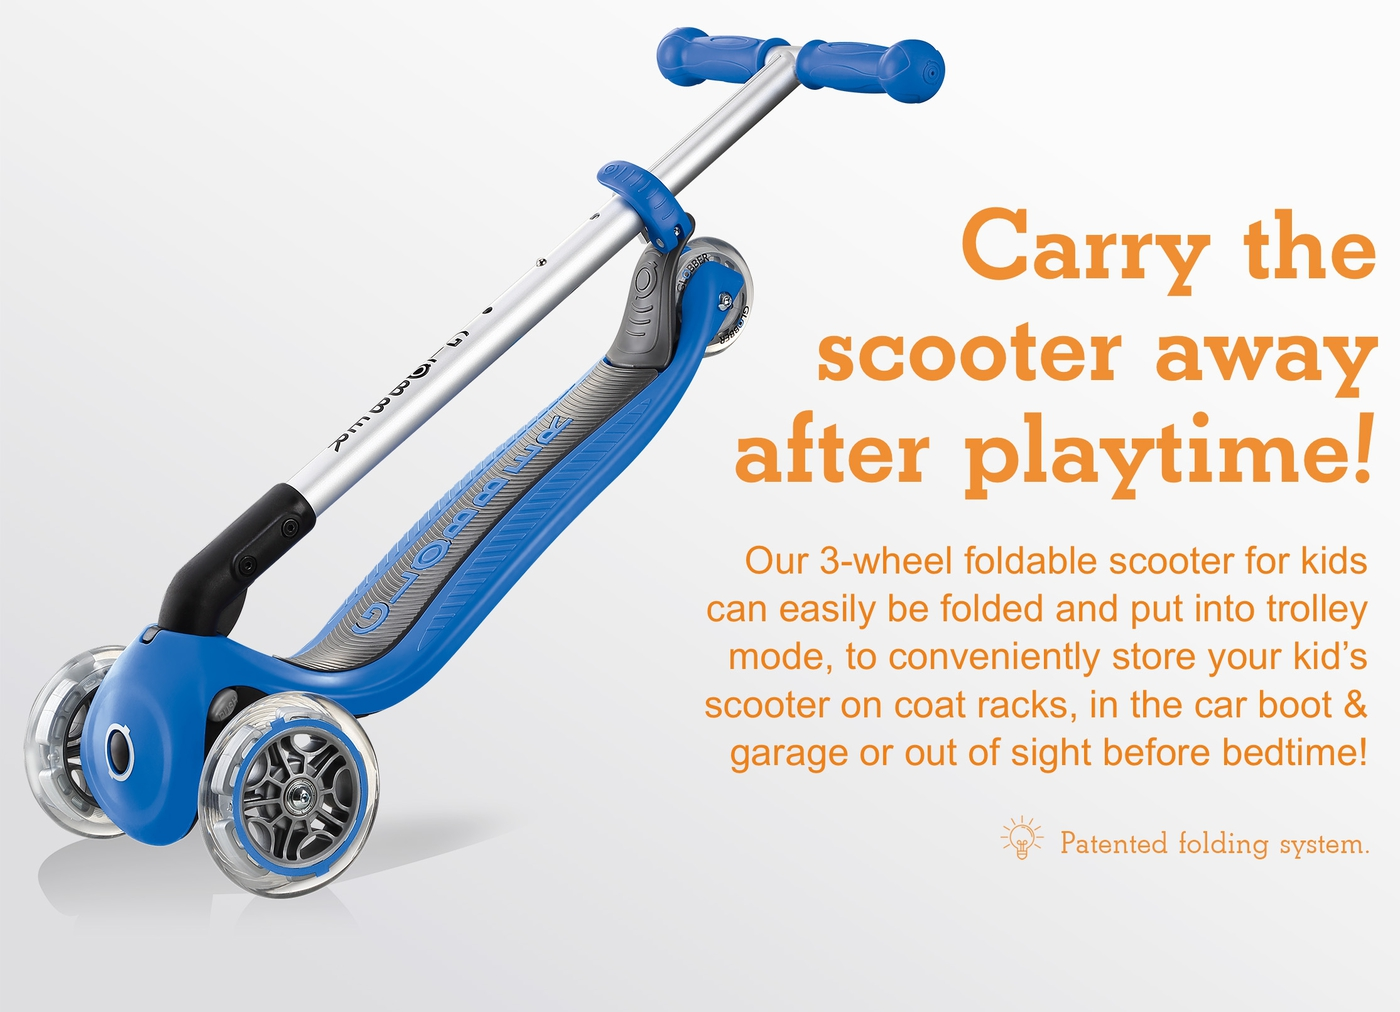 Carry the scooter away after playtime!